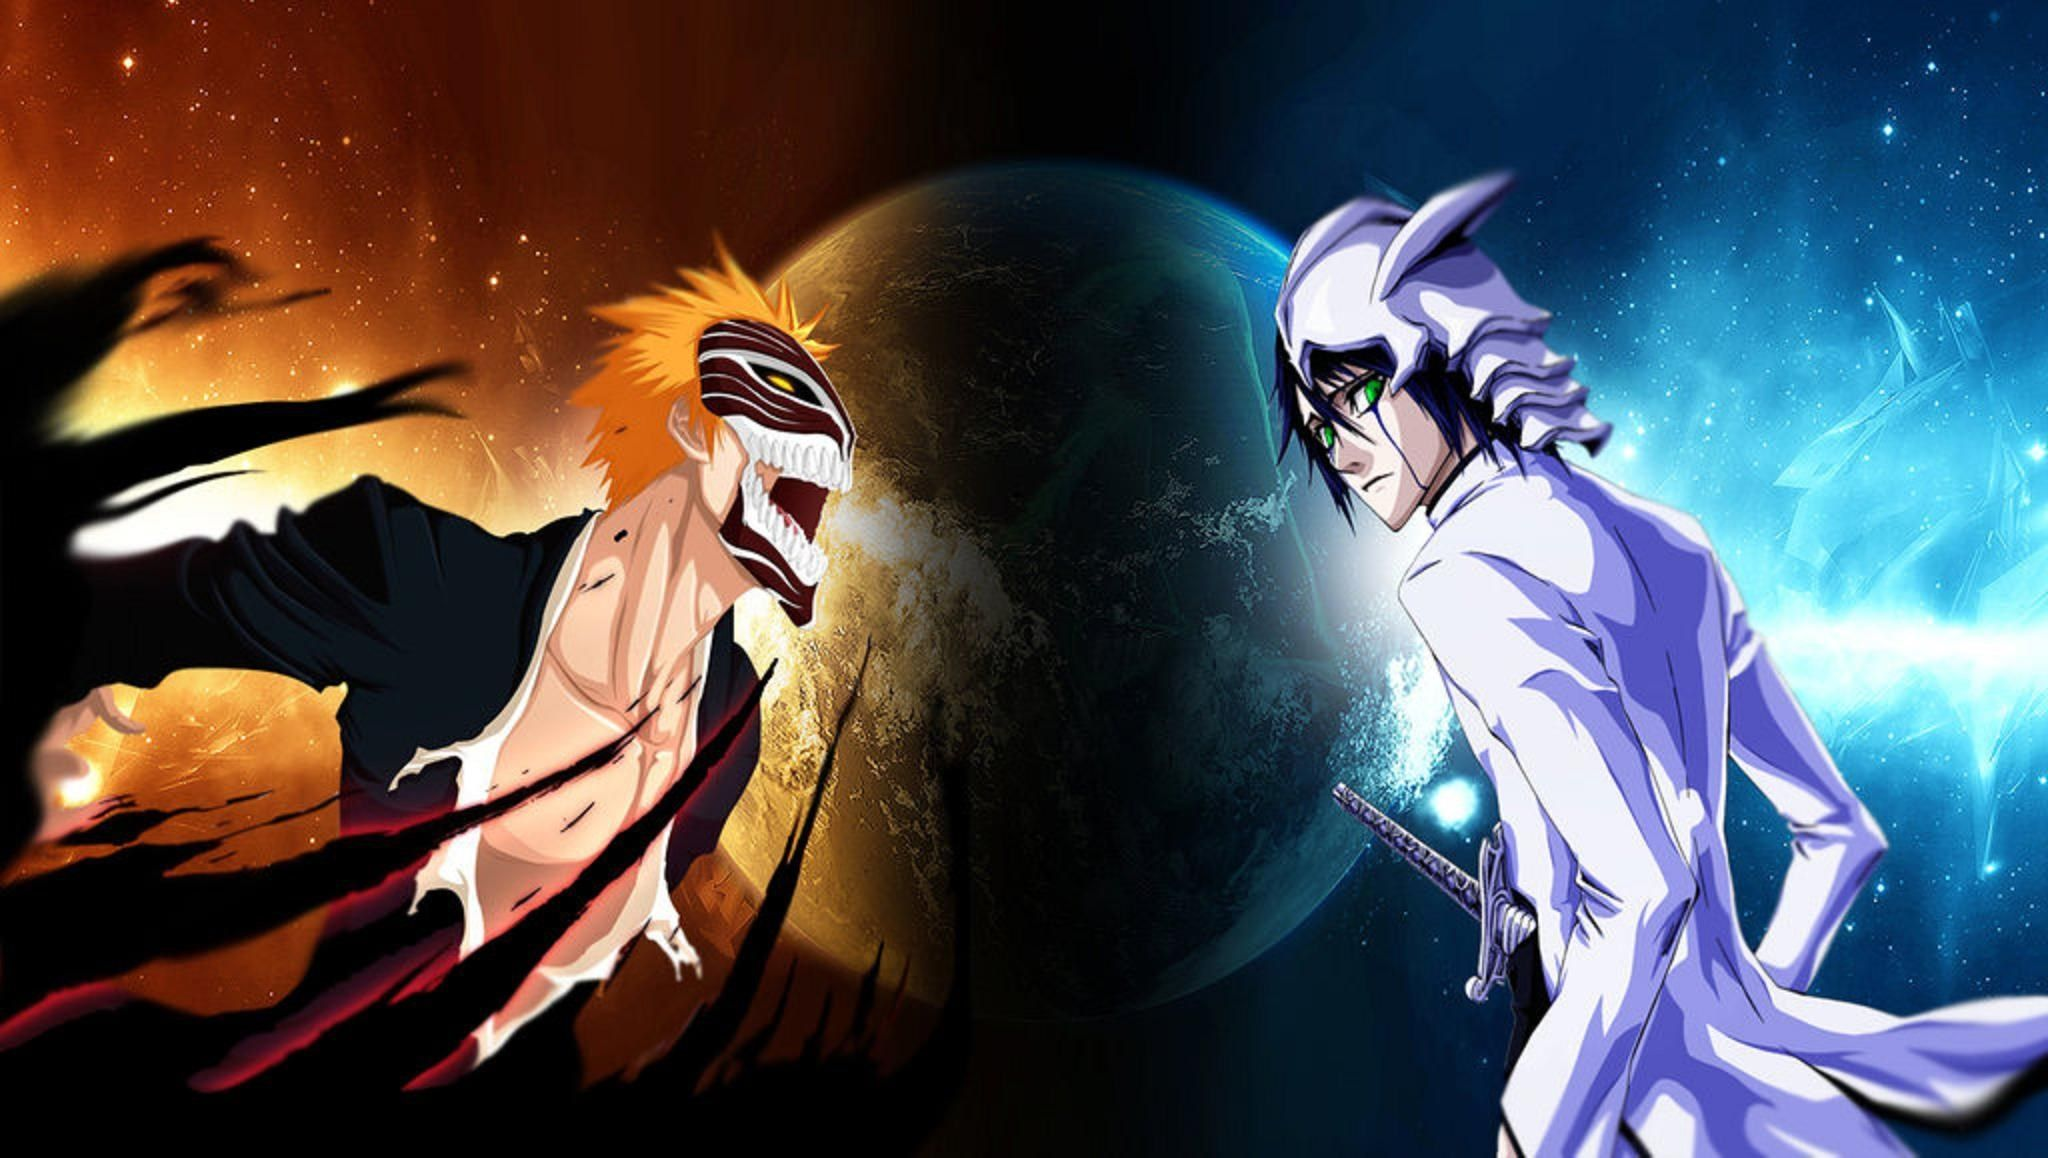 2048x1158 bleach computer wallpaper backgrounds Anime, Vs.